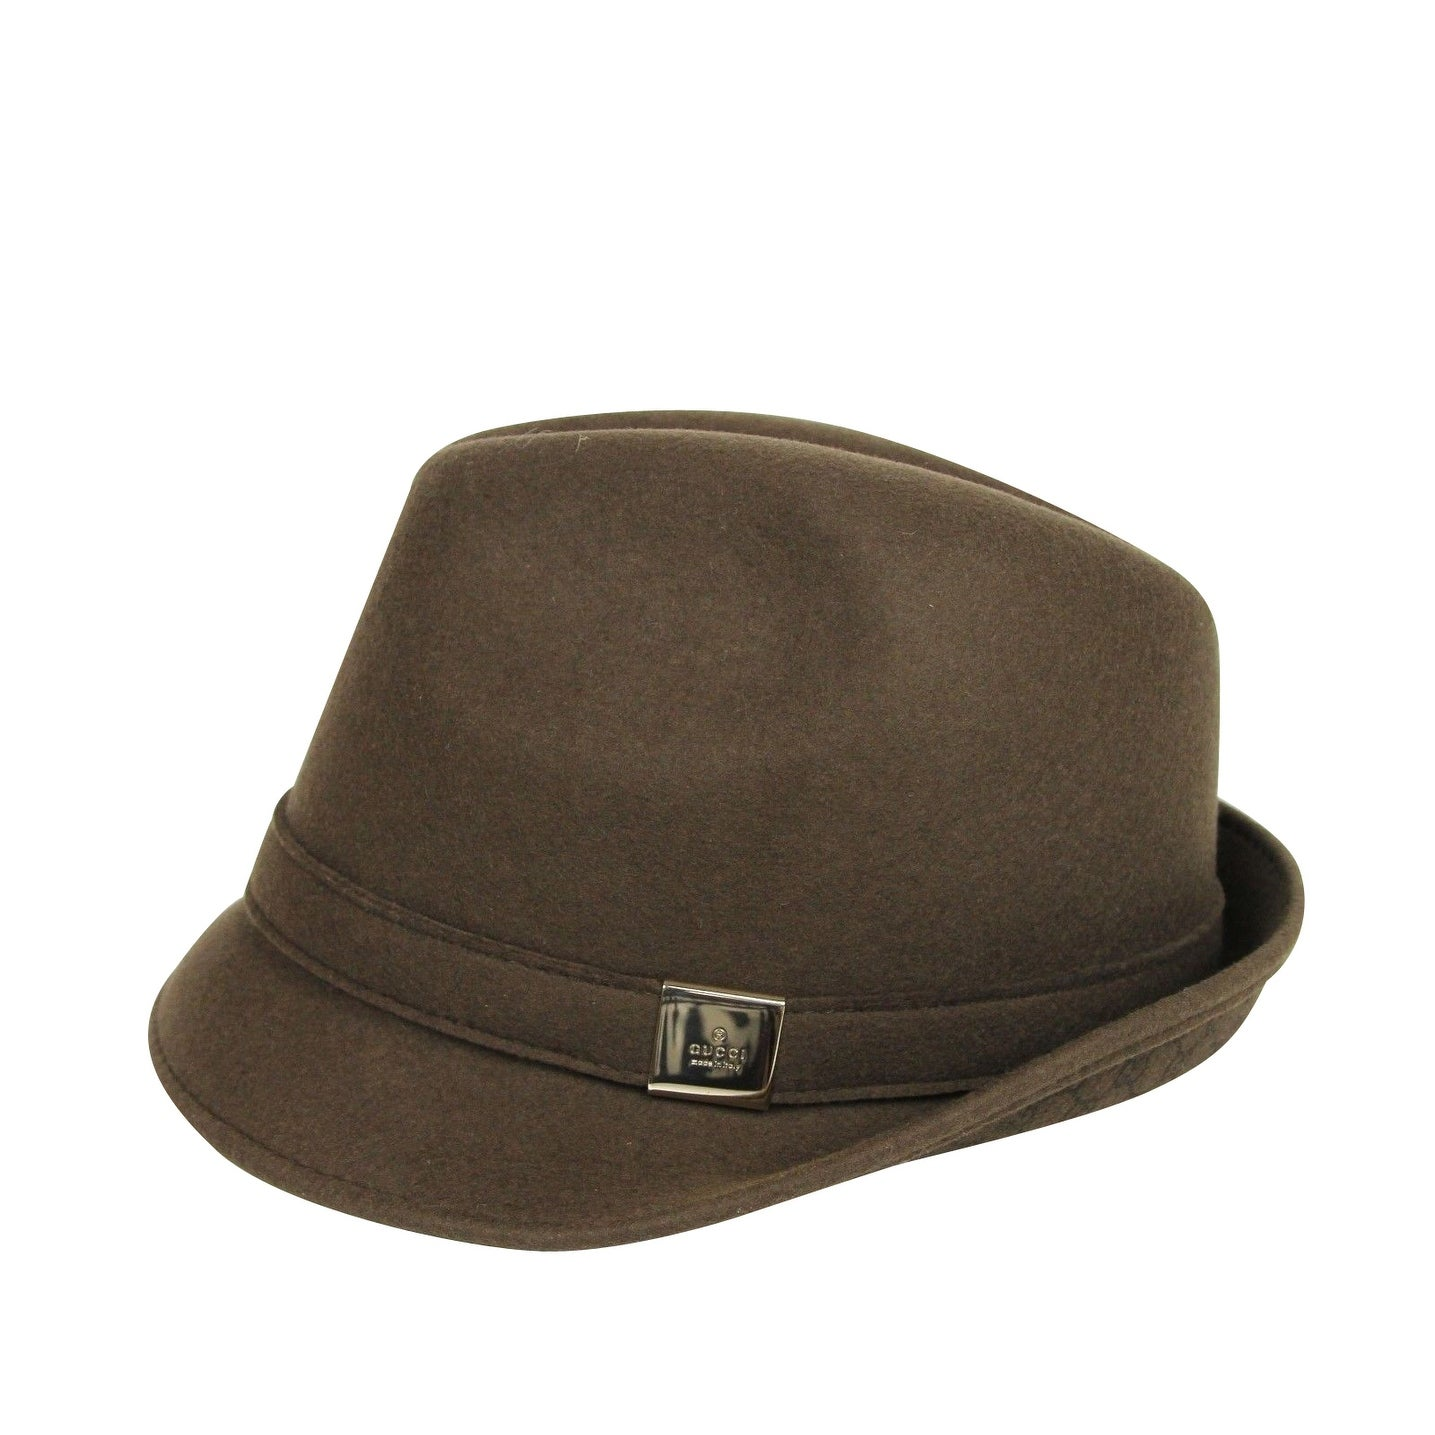 535f7638 Shop Gucci Unisex Silver Plaque Logo Brown Wool Fedora Hat 322289 2366 -  Free Shipping Today - Overstock - 28414692